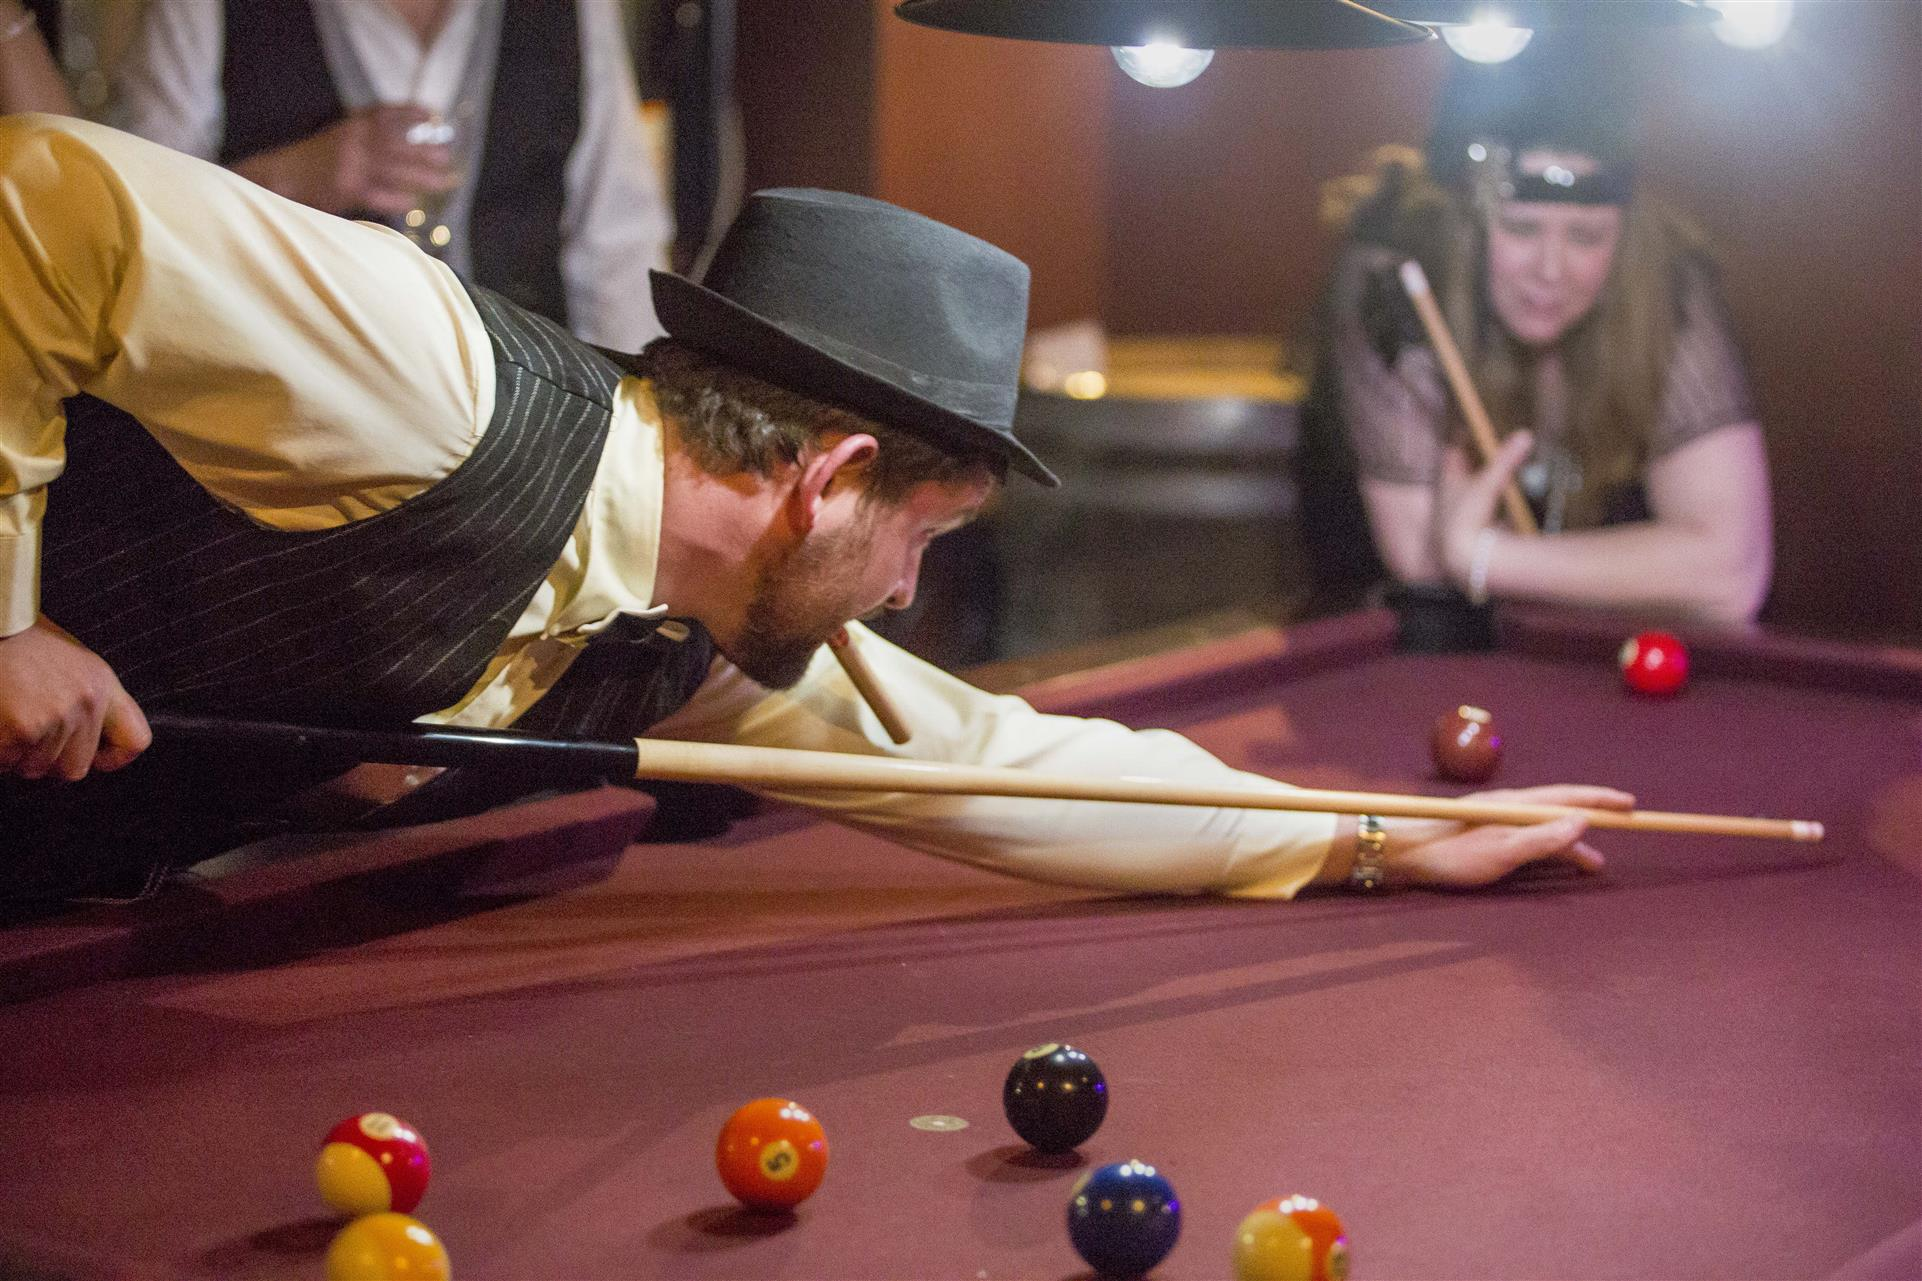 man dressed in 1920s era playing pool